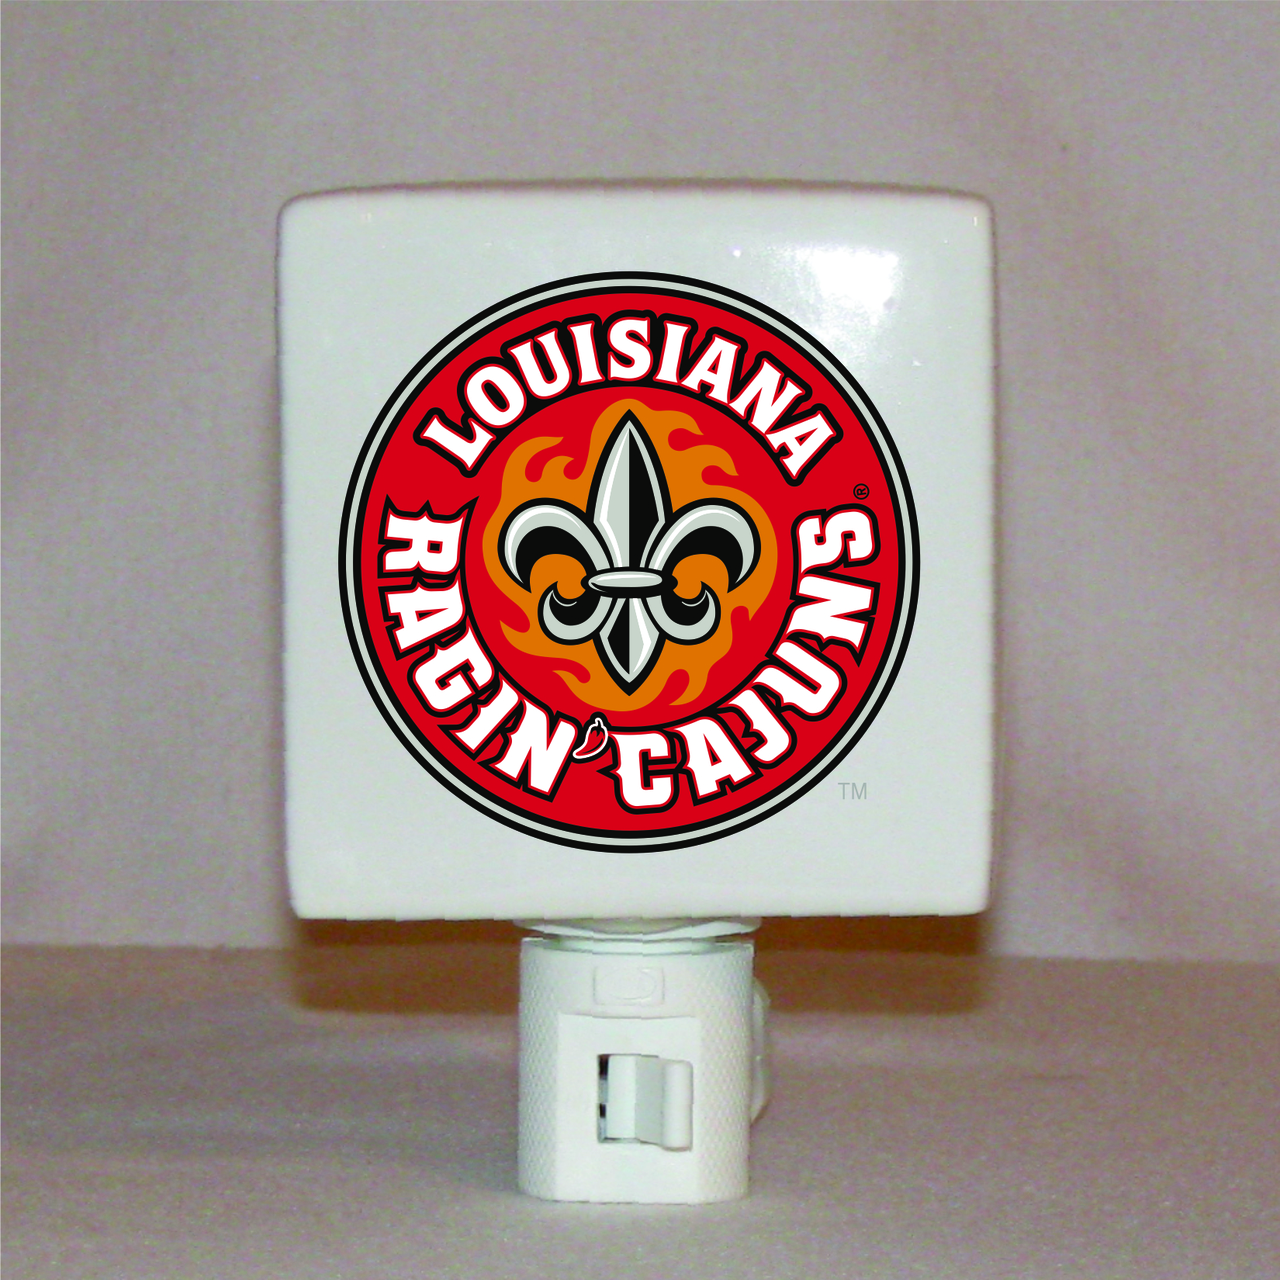 Louisiana Ragin' Cajuns Night Light